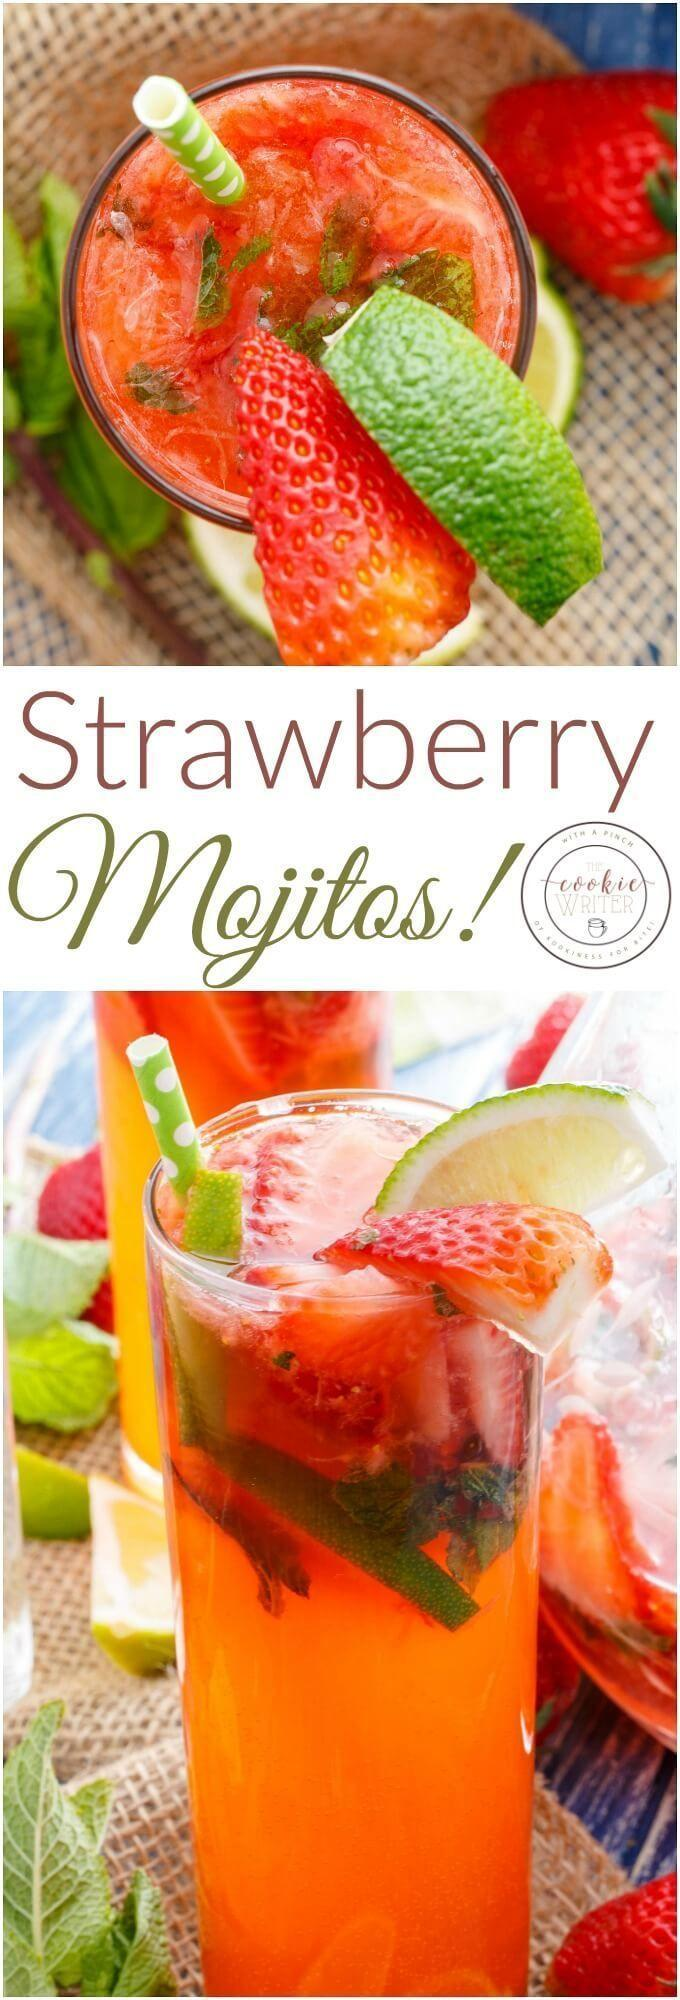 Wedding - Fresh Strawberry Mojitos